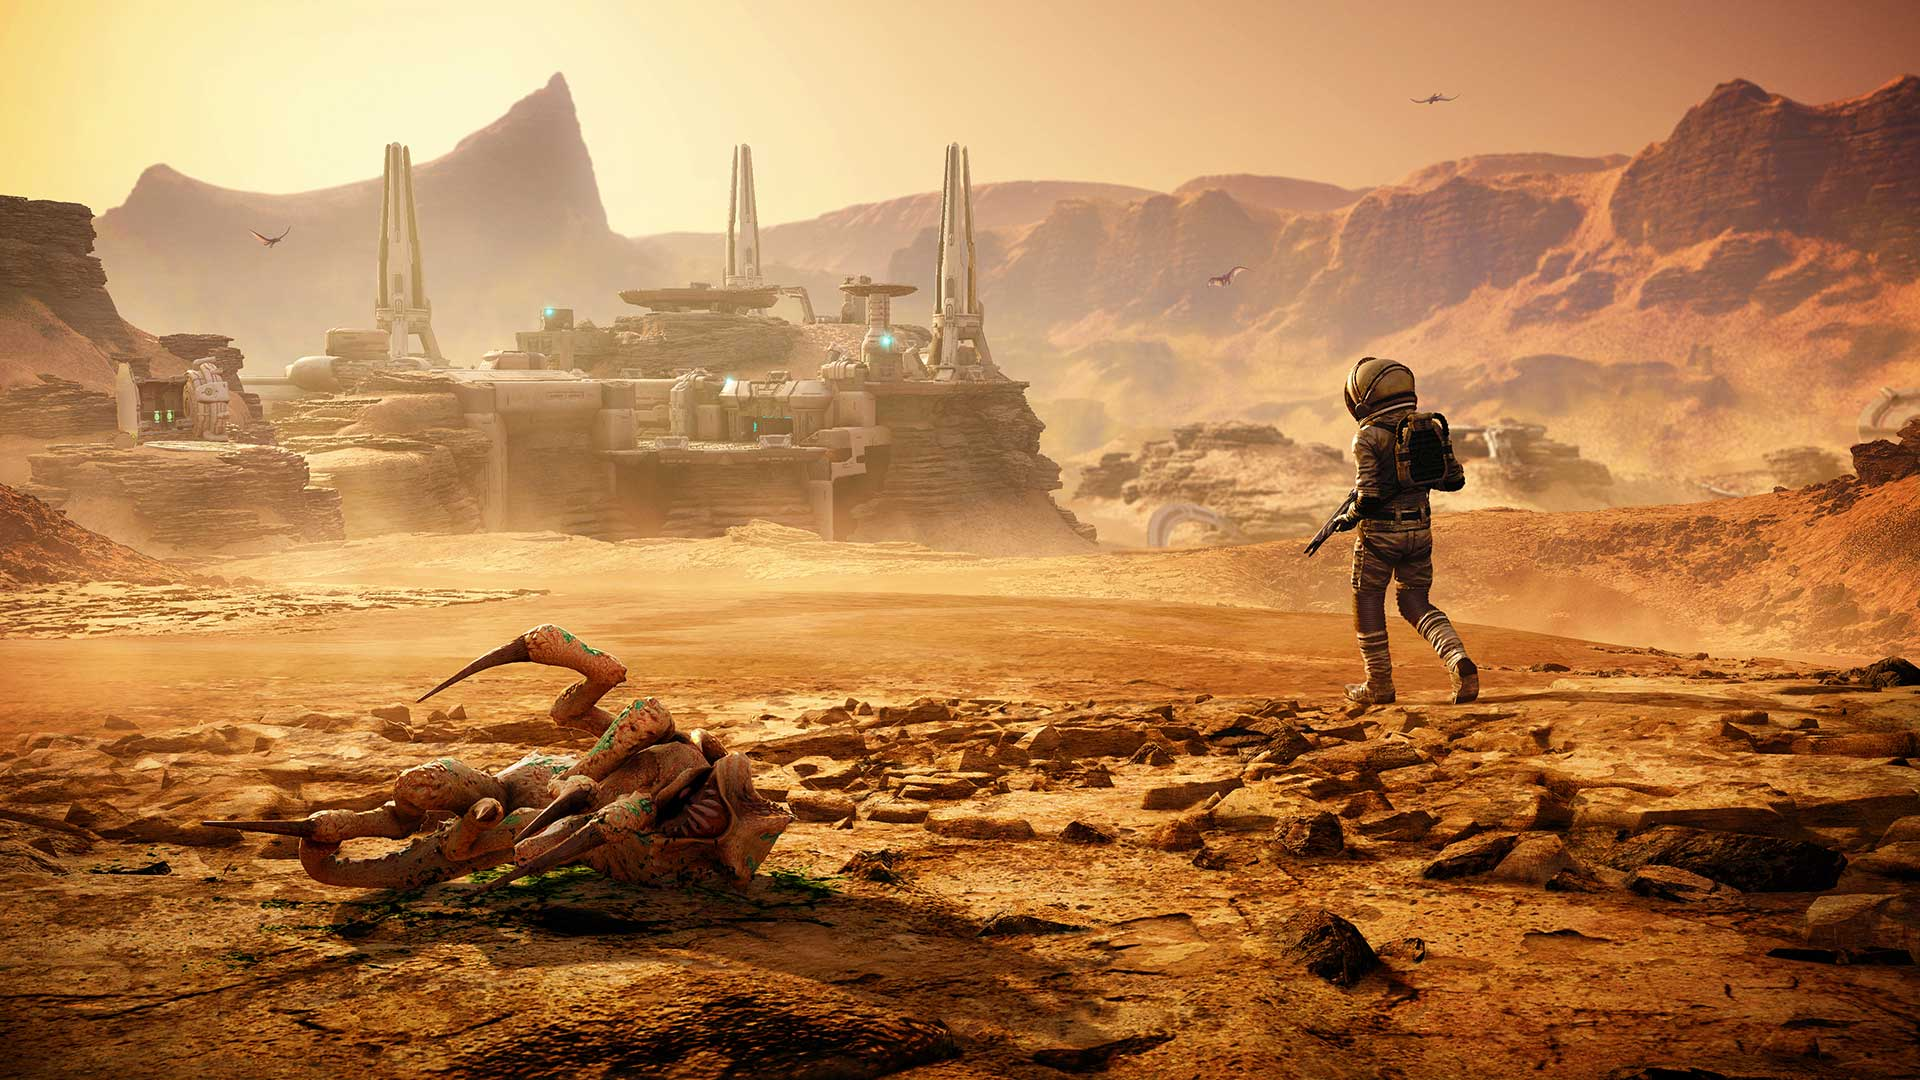 Far Cry 5: Second DLC takes place on Mars